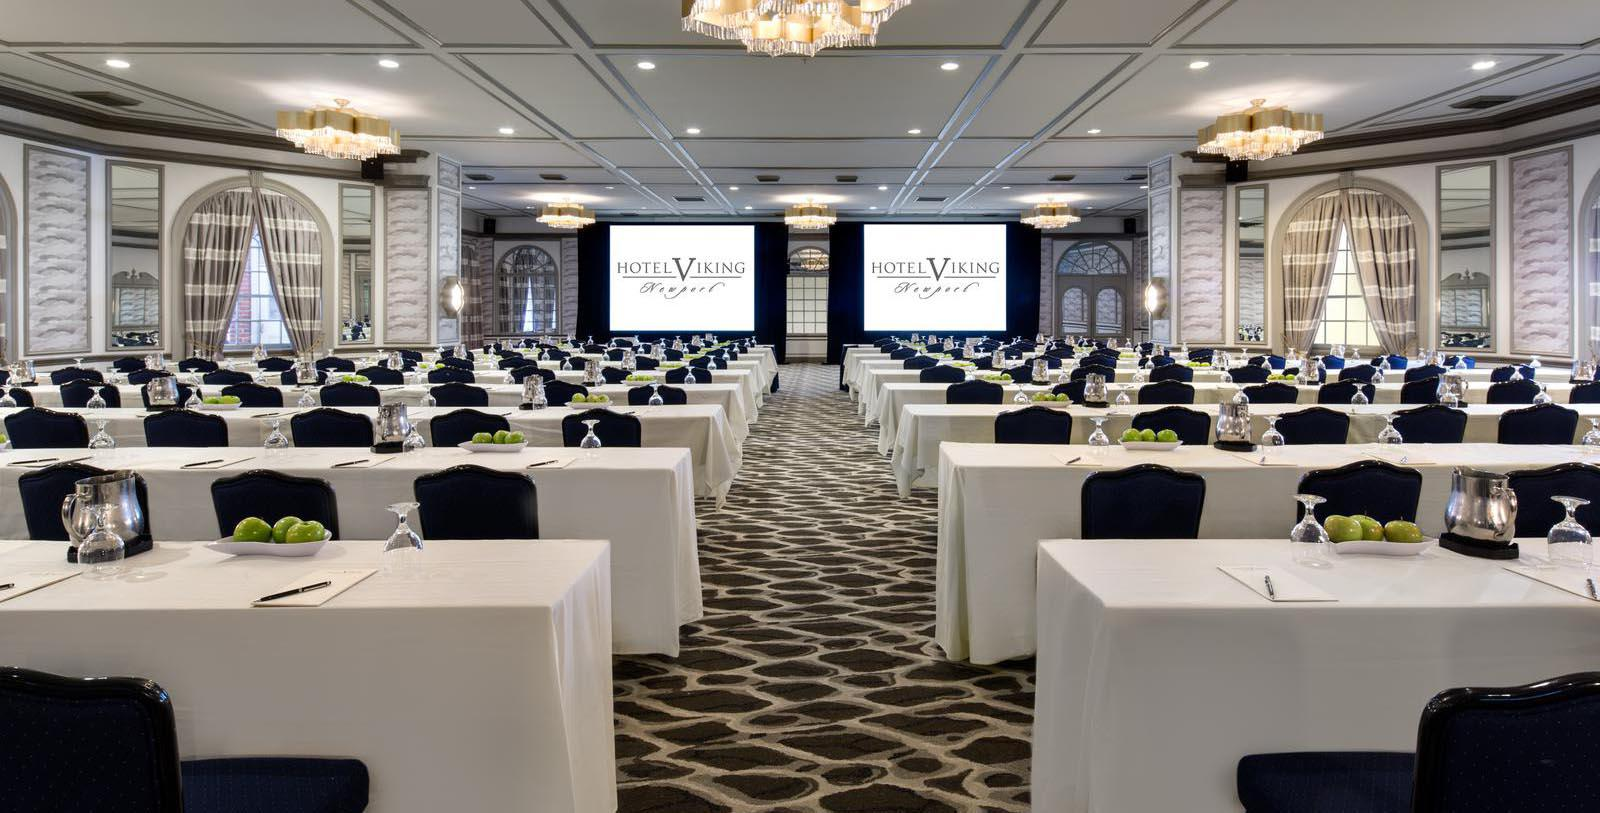 Image of Meeting Space The Hotel Viking, 1926, Member of Historic Hotels of America, in Newport, Rhode Island, Experience